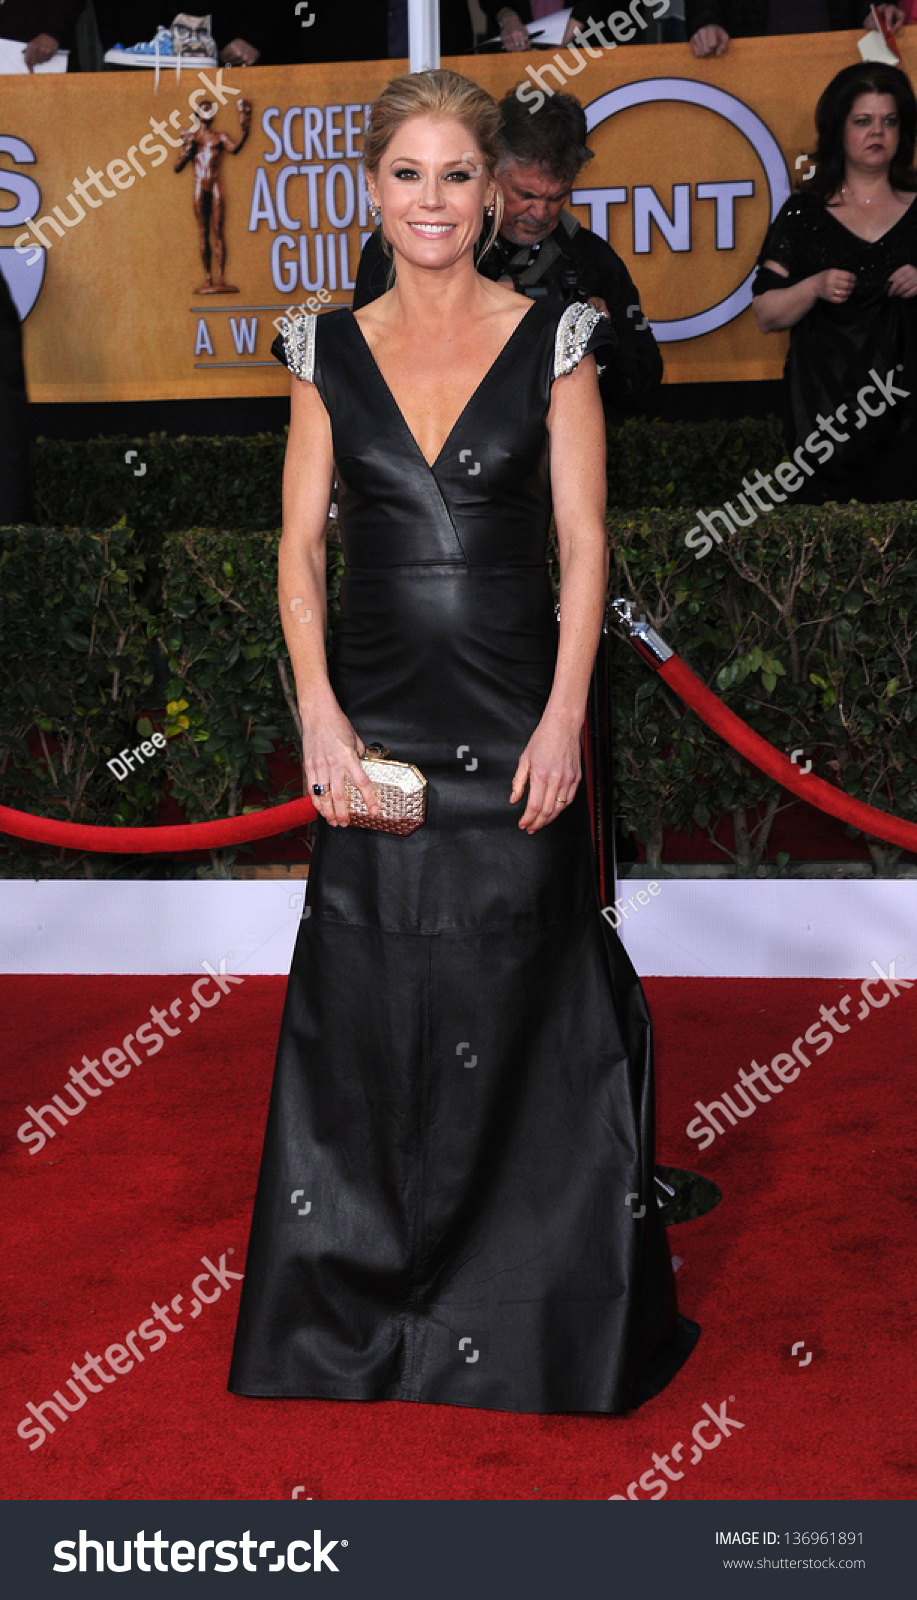 Discussion on this topic: Slackerjack ball toucher, teresa-palmer-sag-awards-in-los-angeles/